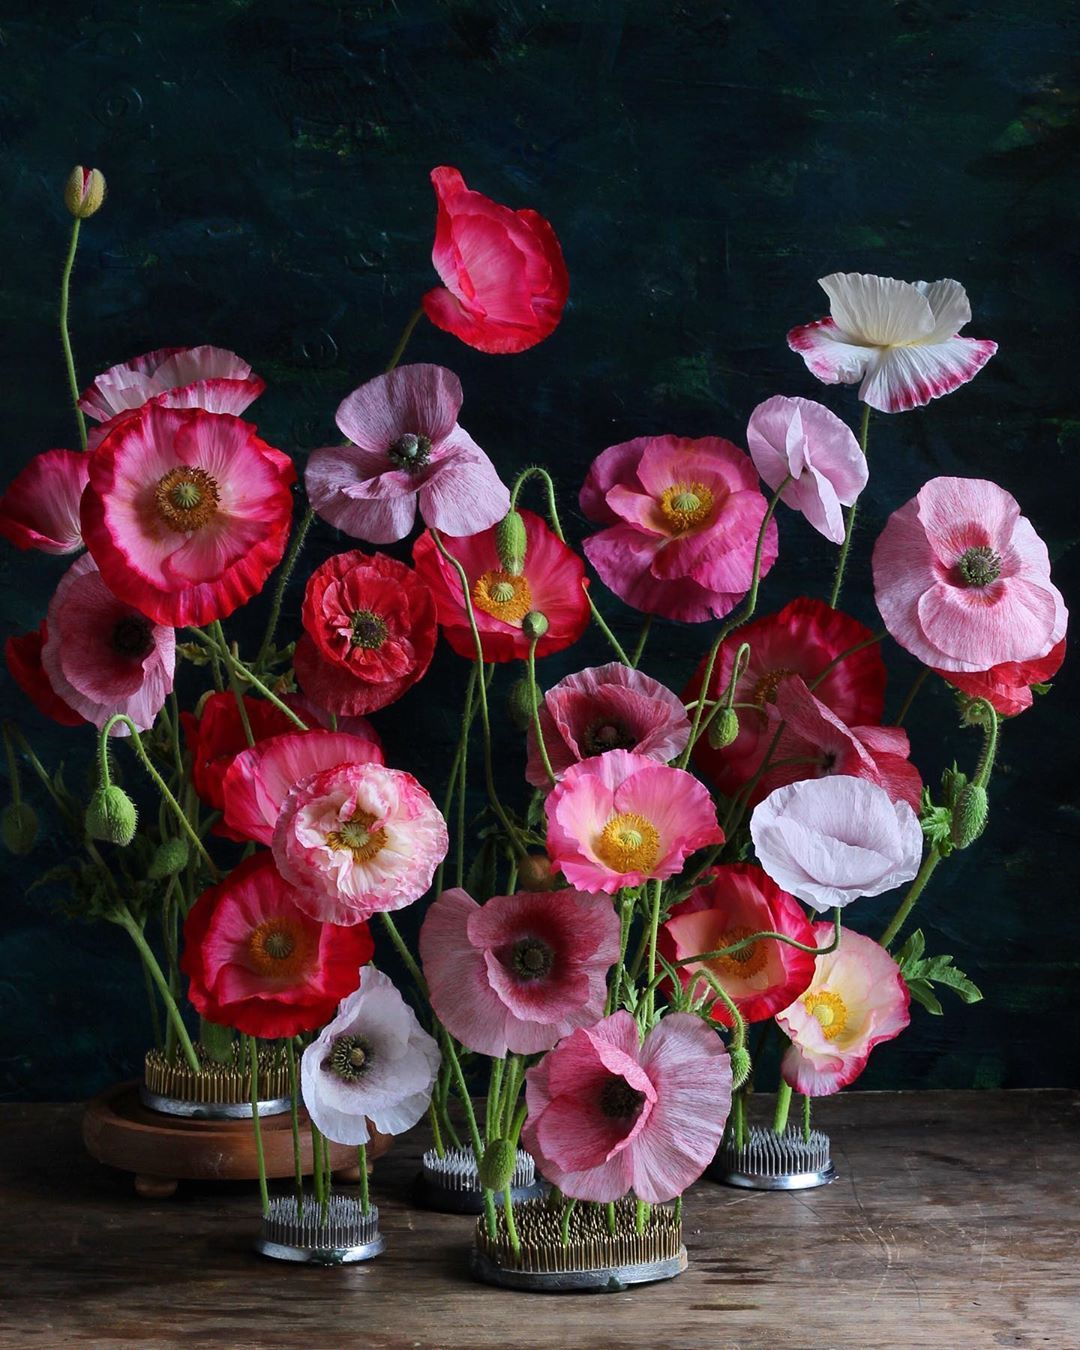 If You Look Incessantly For Variety Sooner Or Later You Will Discover That You Need More Wisdom Fausto Cercignani O Flower Images Amazing Flowers Flowers